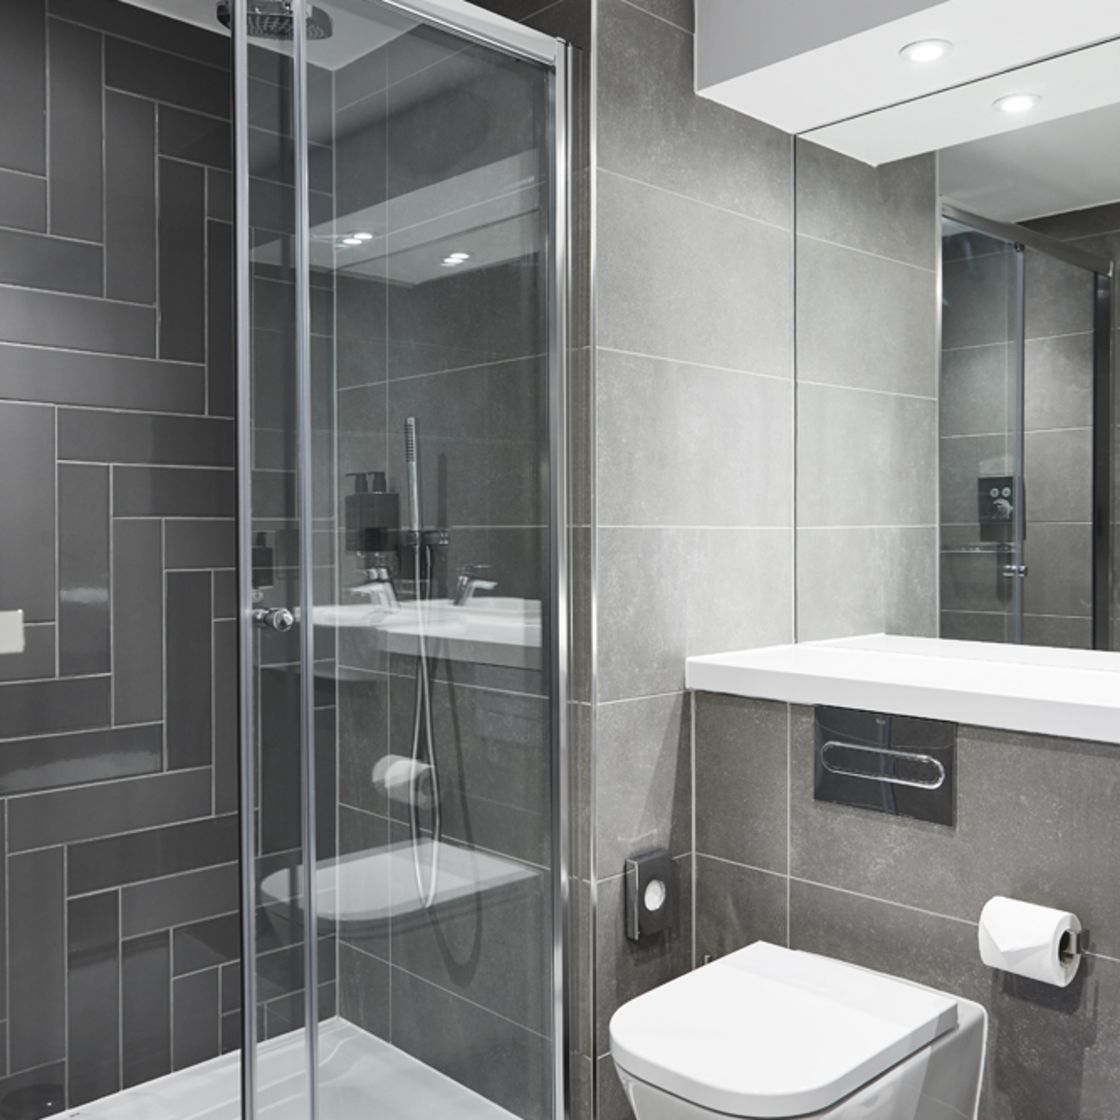 En-suite bathroom with rainfall shower. IconInc @ Roomzzz. Student Accommodation in York